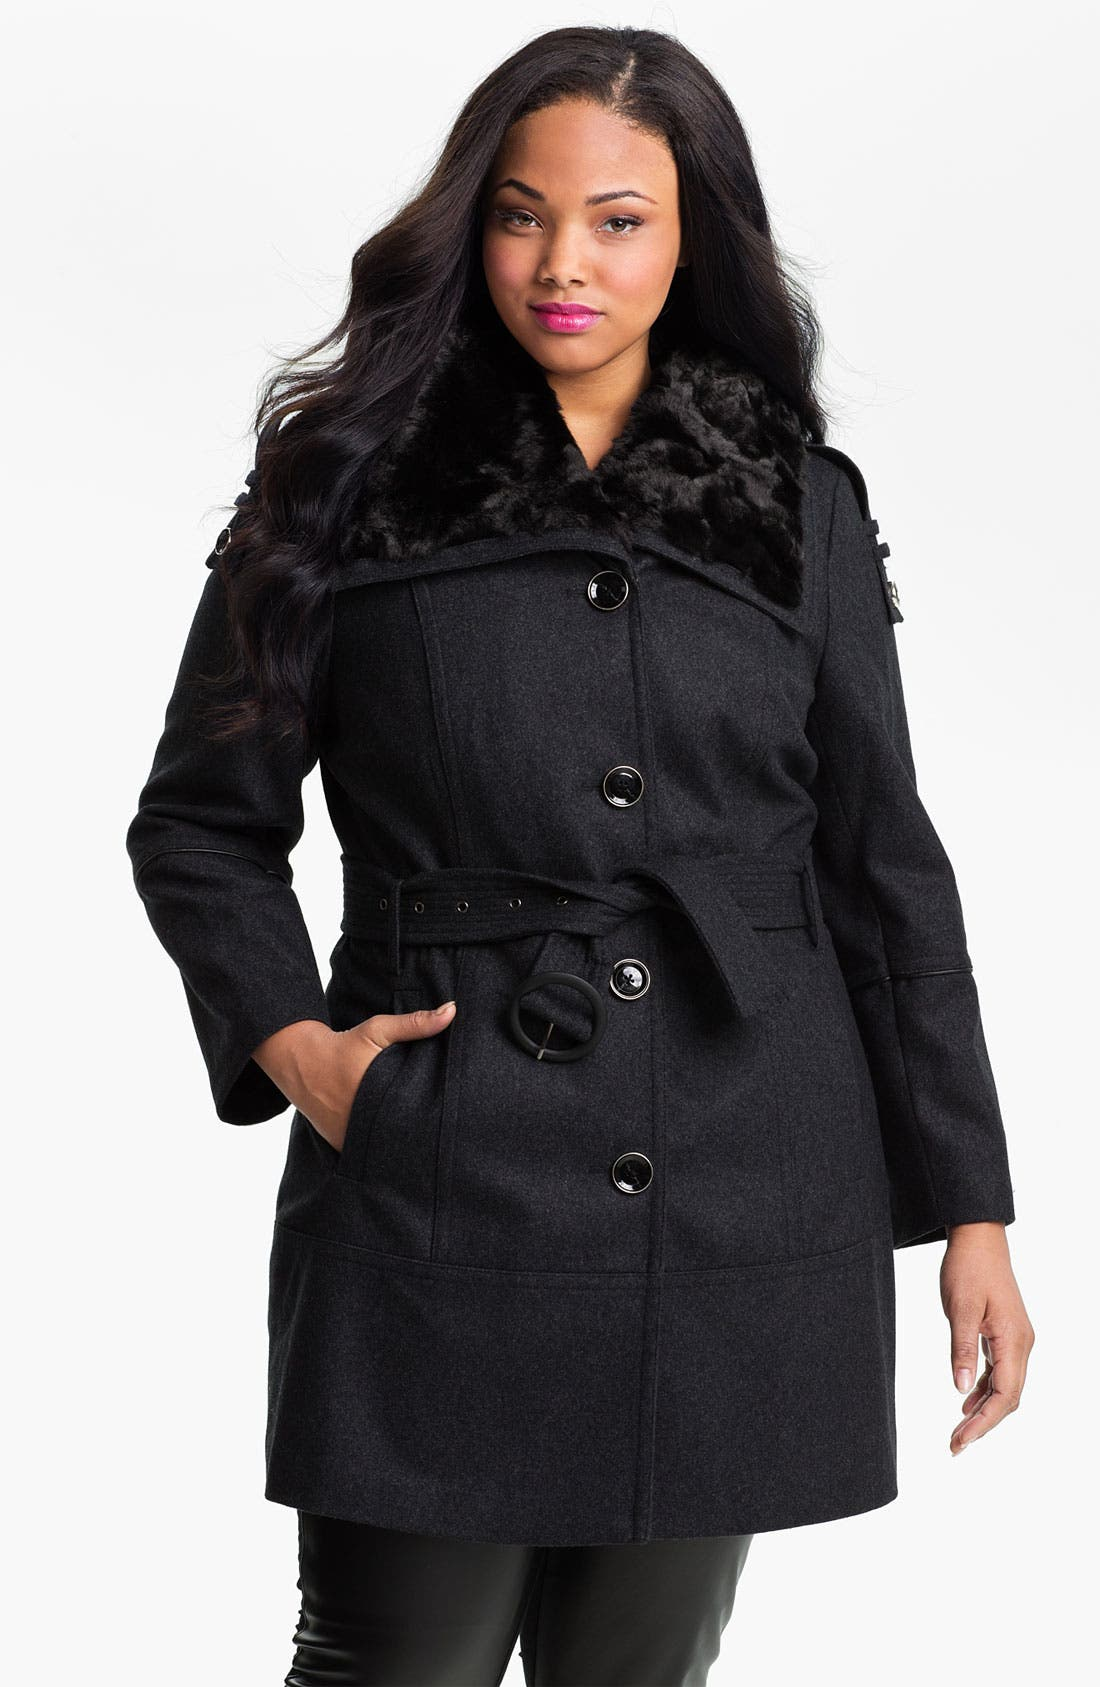 Alternate Image 1 Selected - Miss Sixty Walking Coat with Faux Fur Collar (Plus) (Online Exclusive)